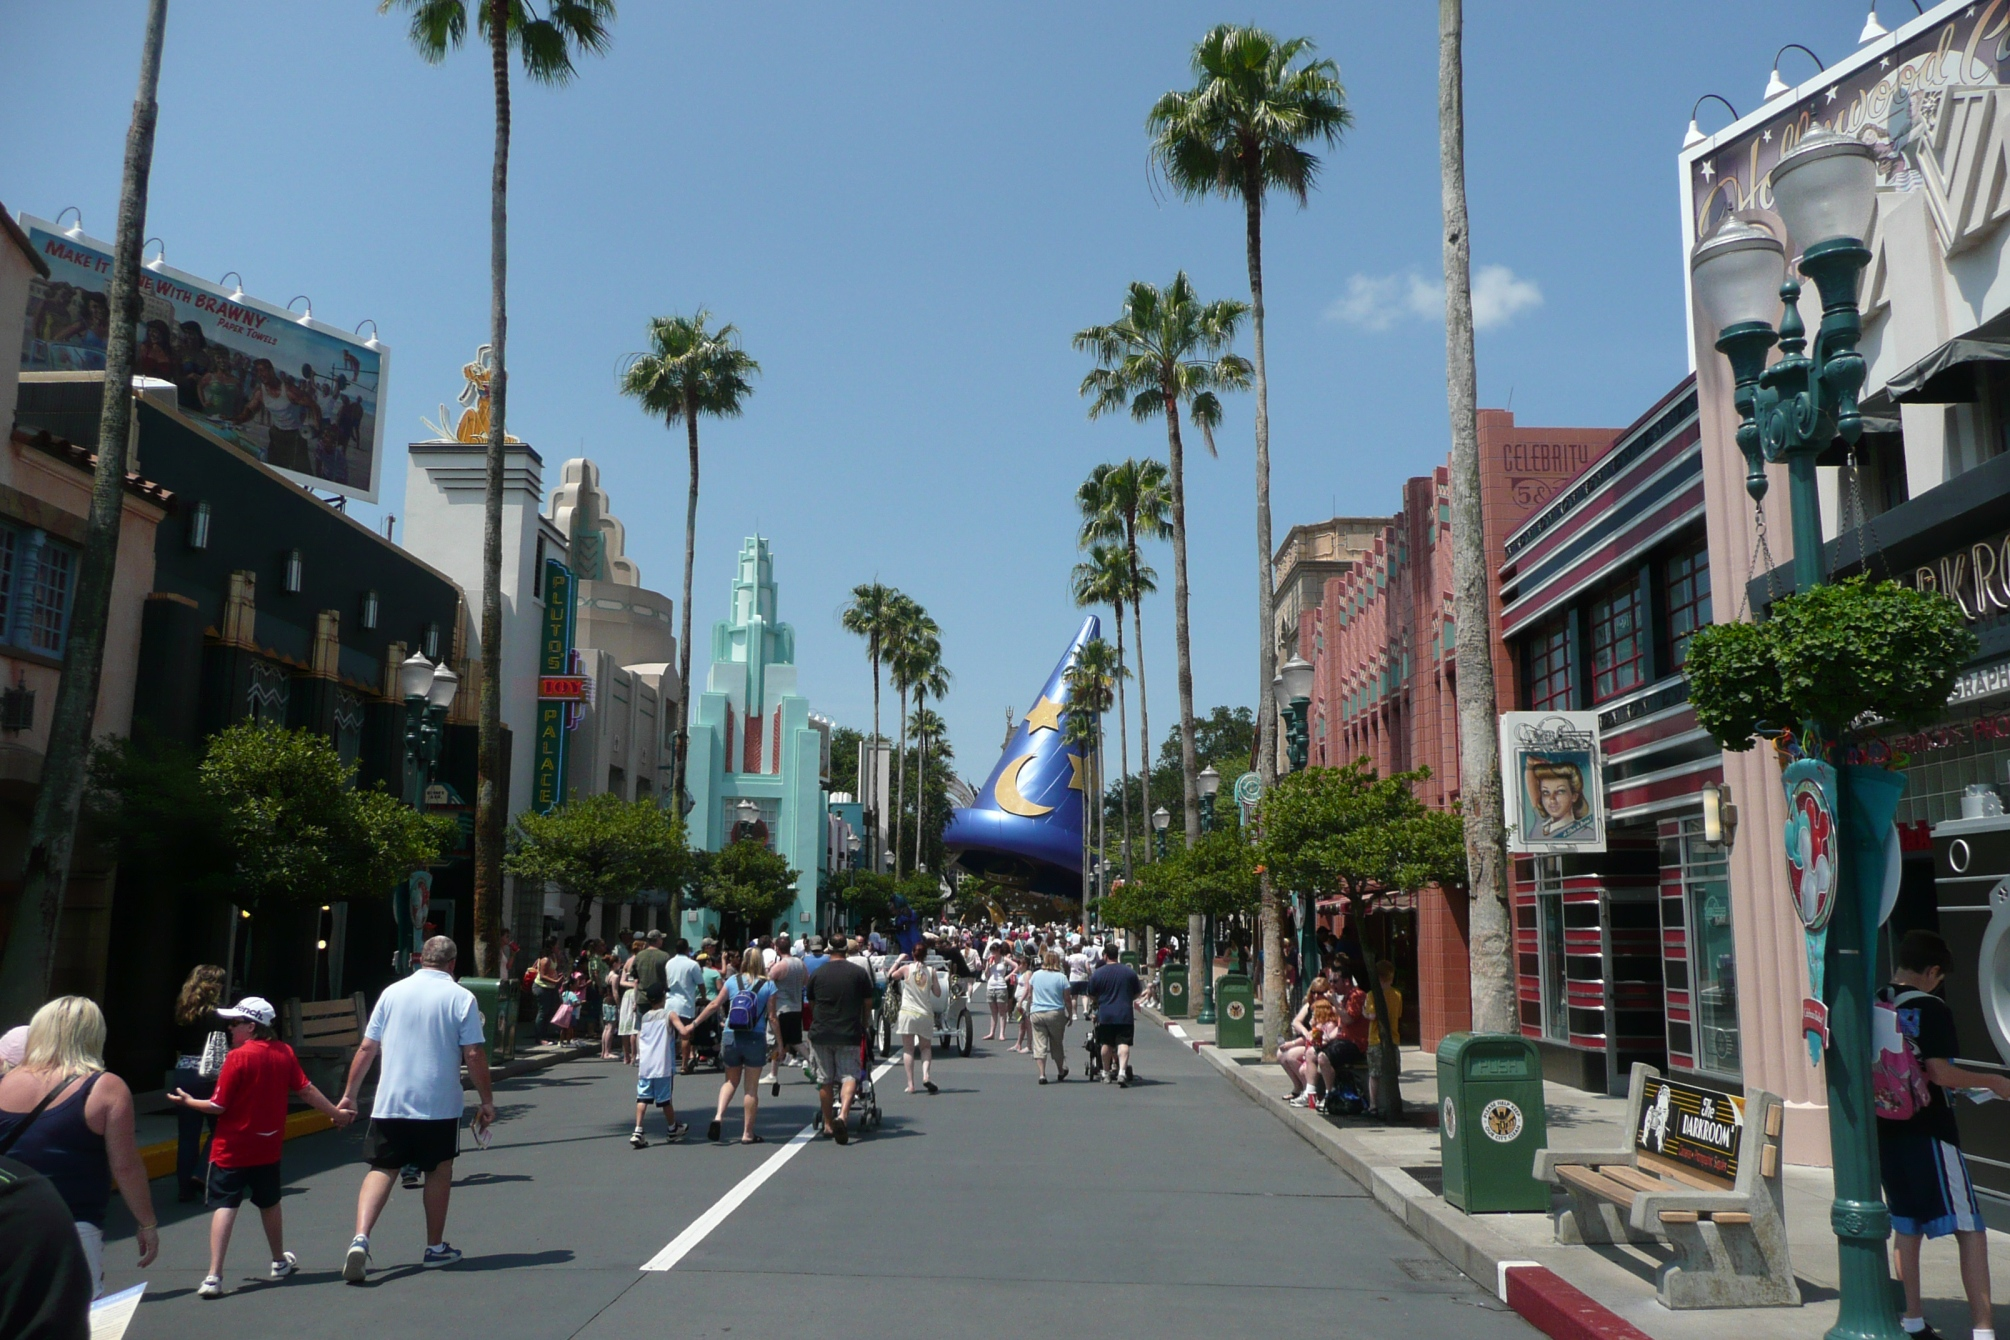 FileHollywood Boulevard At Disneys Hollywod Studios By